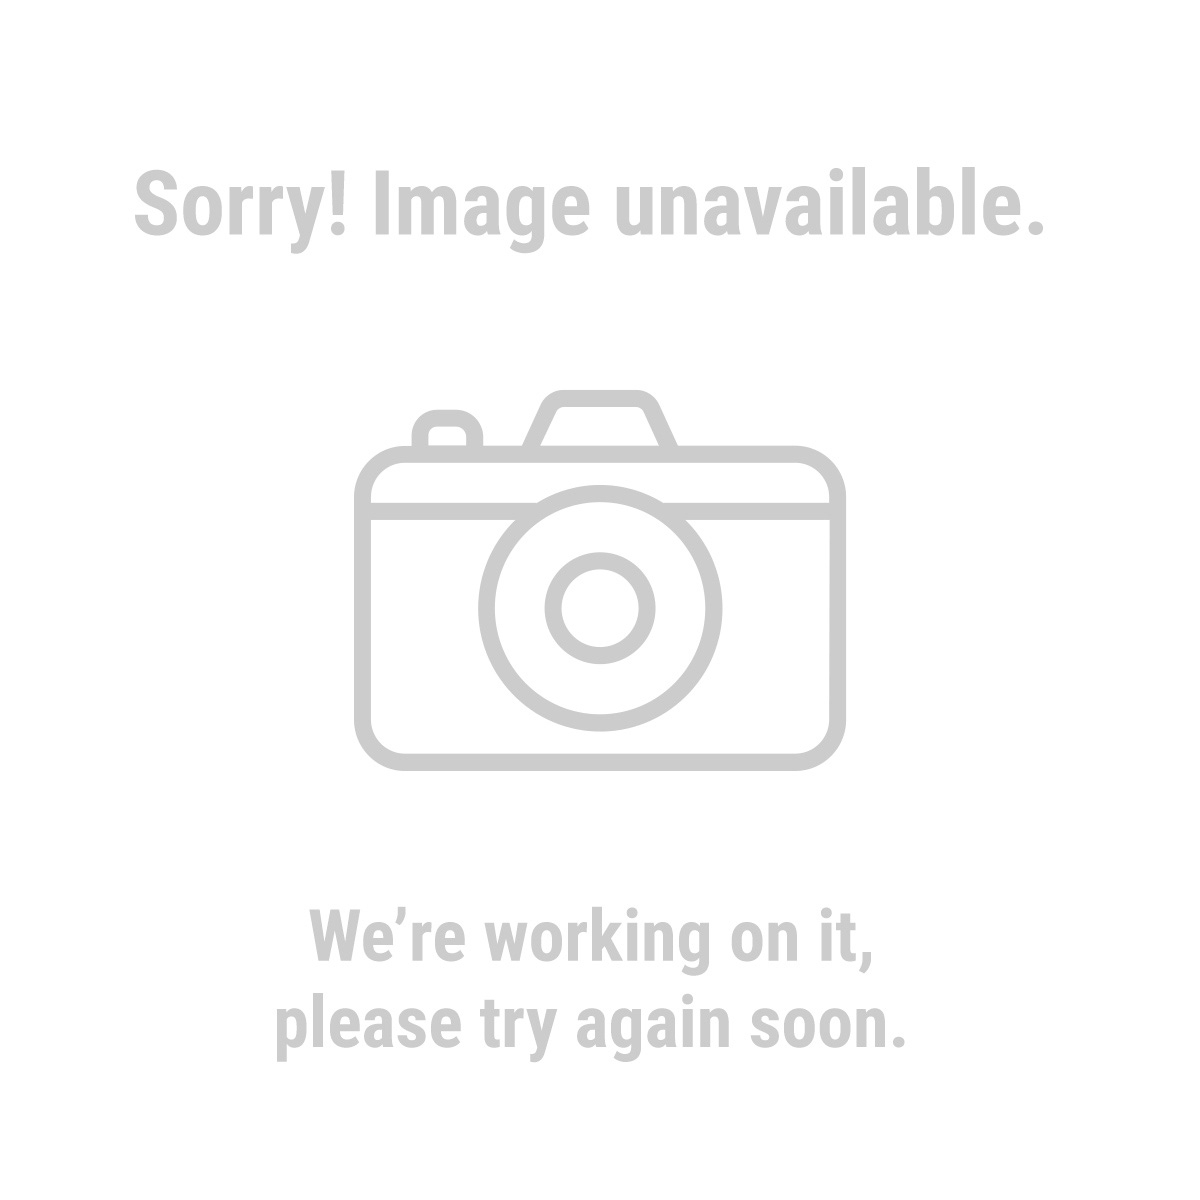 U.S. General 61952 26 in. 4 Drawer 580 lb. Capacity Glossy Black Roller Cart